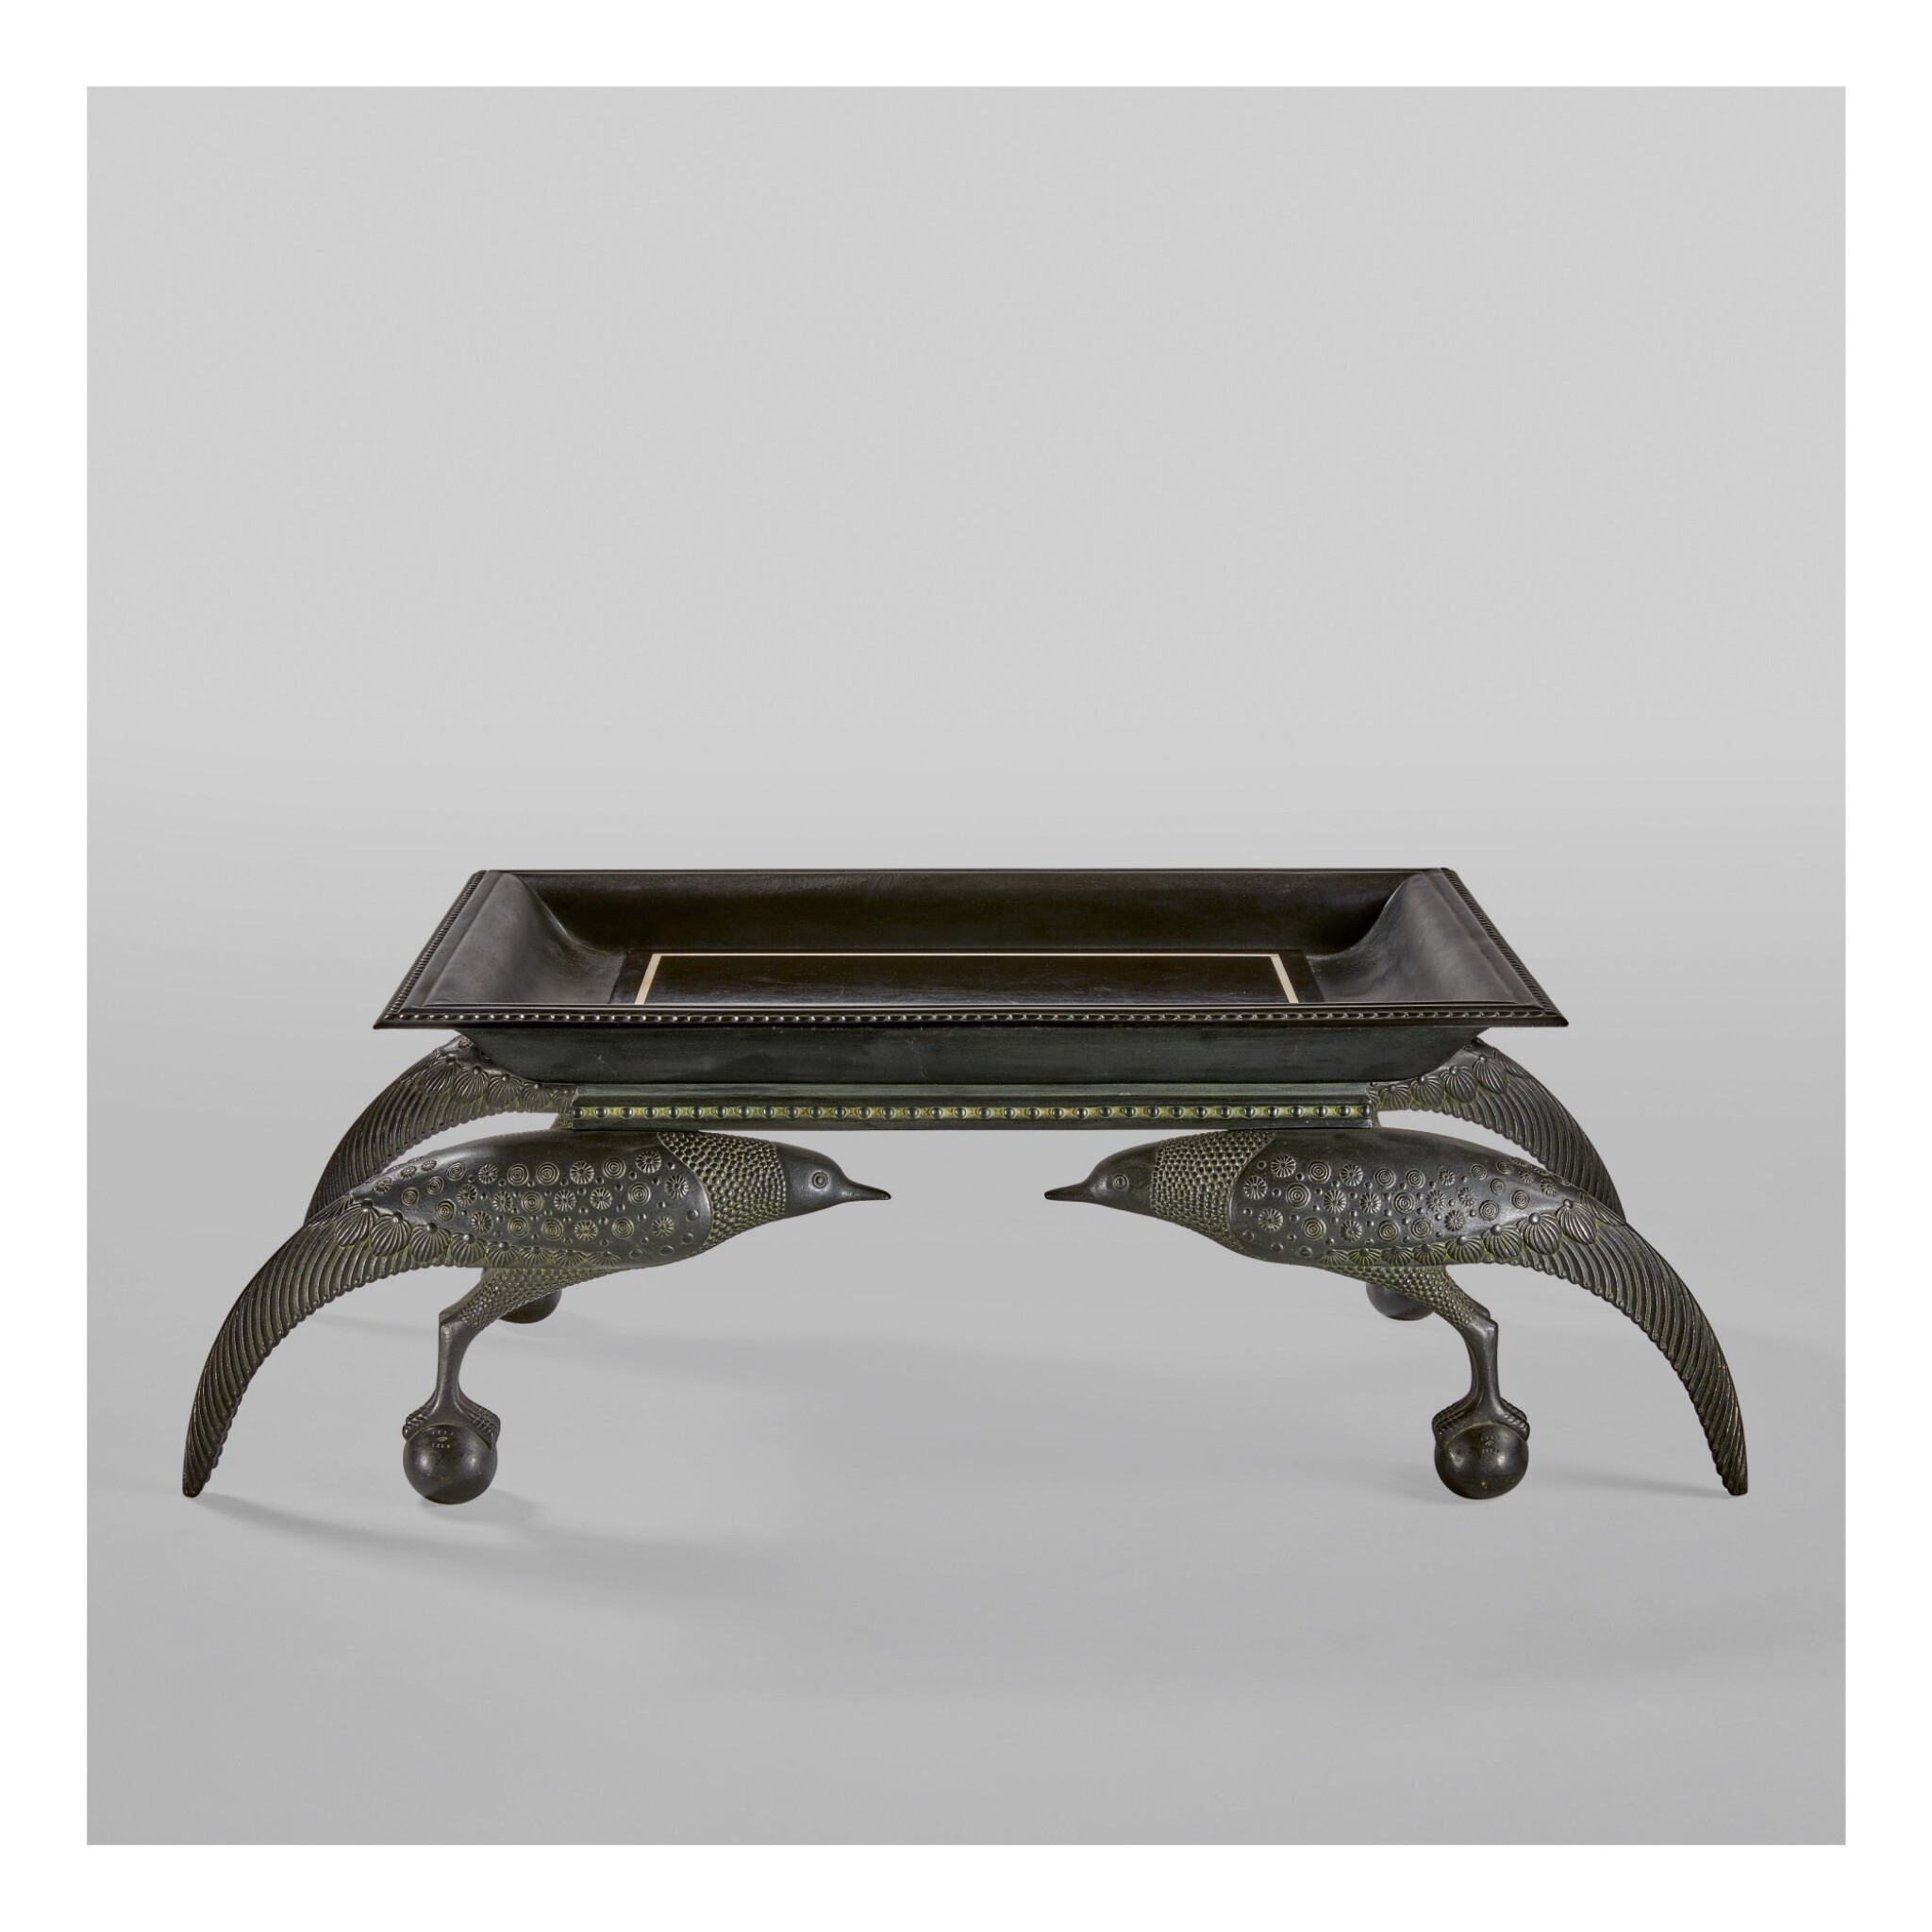 """View 1 of Lot 8. An Important and Rare """"Oiseaux"""" Low Table."""